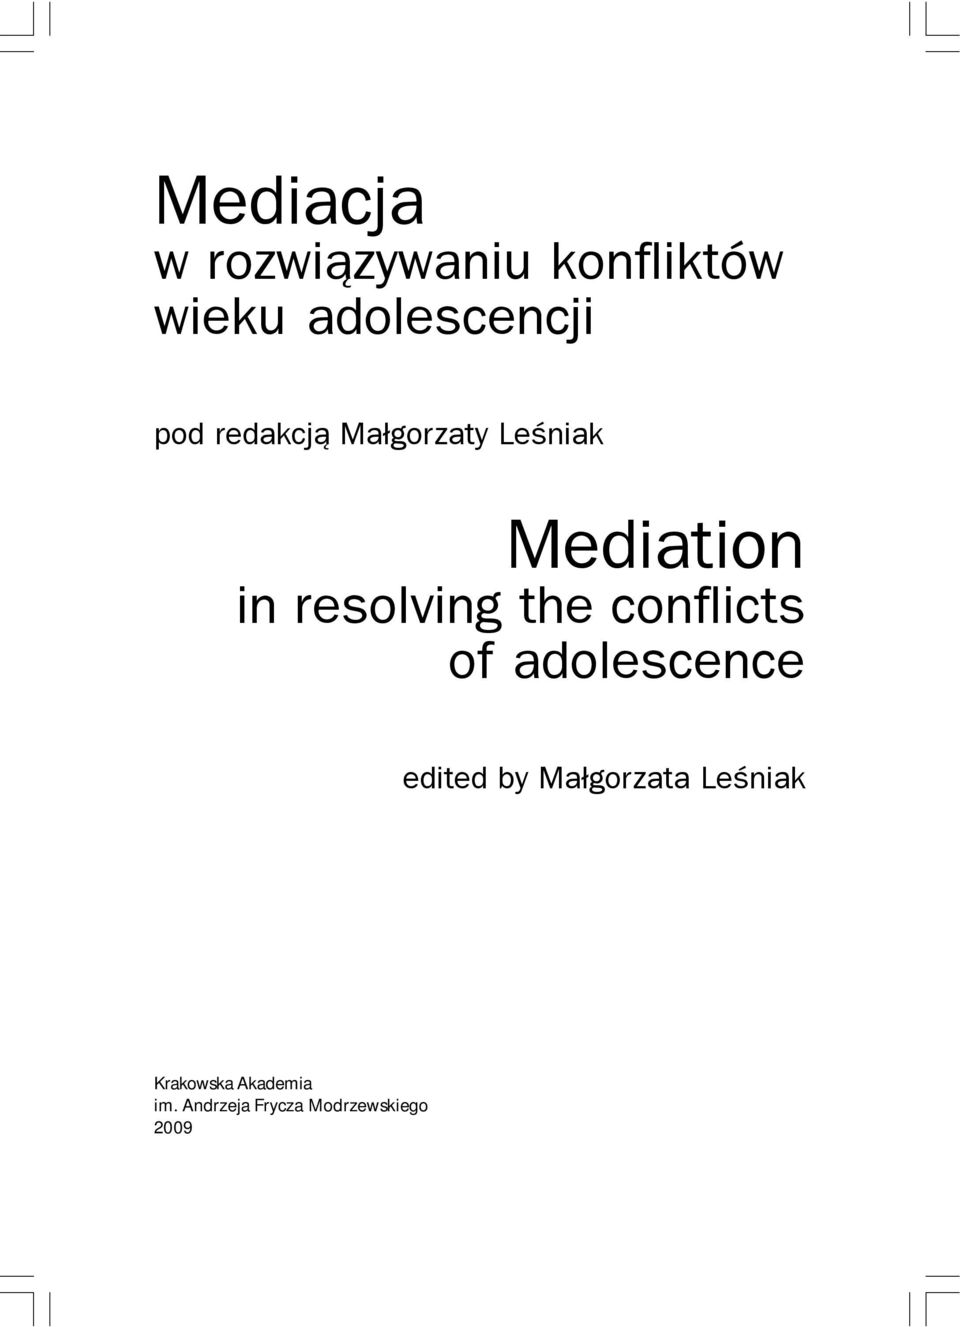 the conflicts of adolescence edited by Ma³gorzata